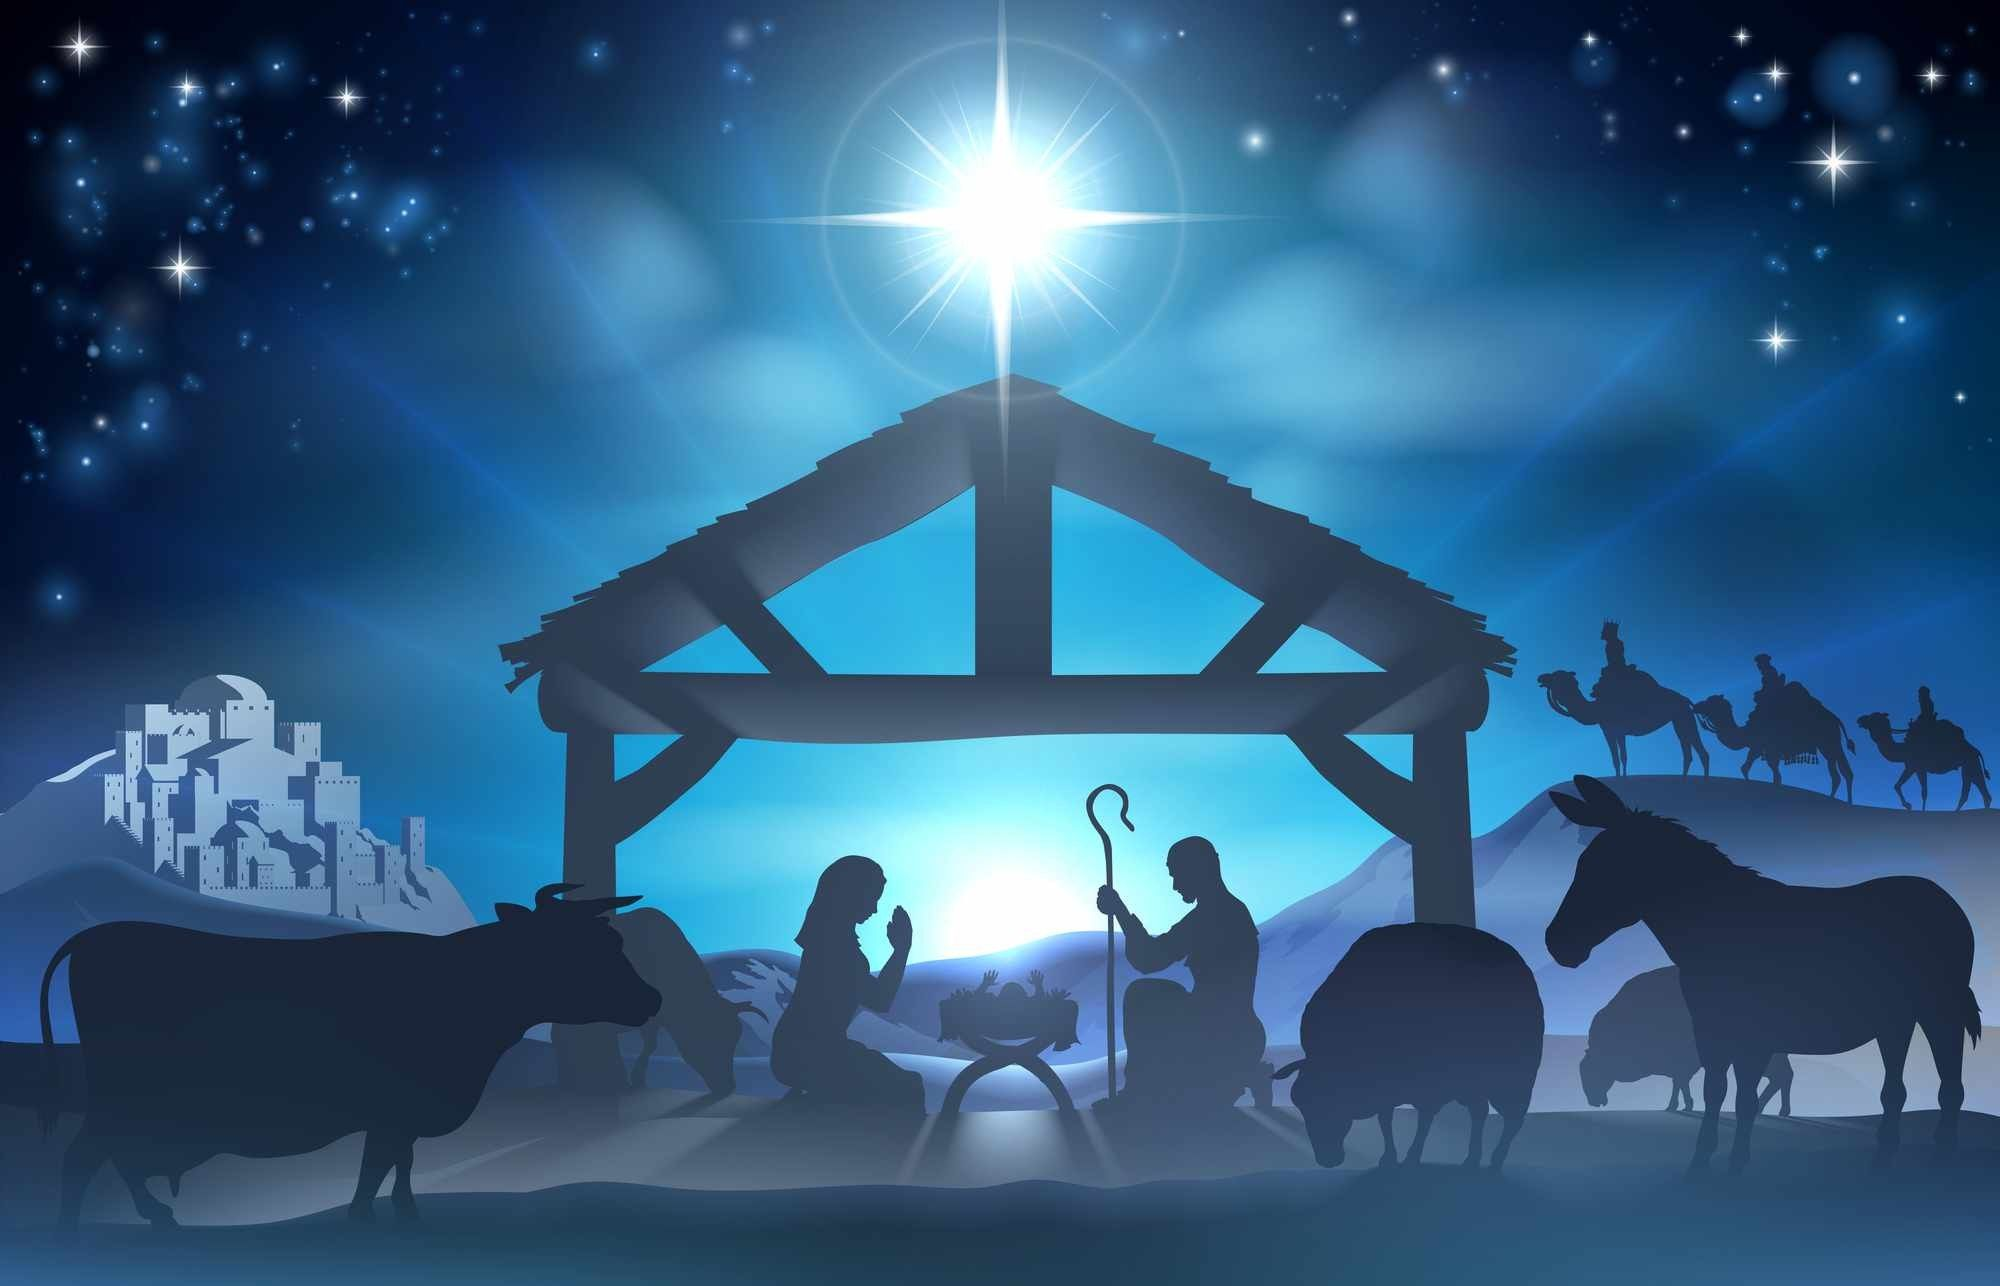 2000x1286 62+ Religious Christmas Wallpapers on WallpaperPlay